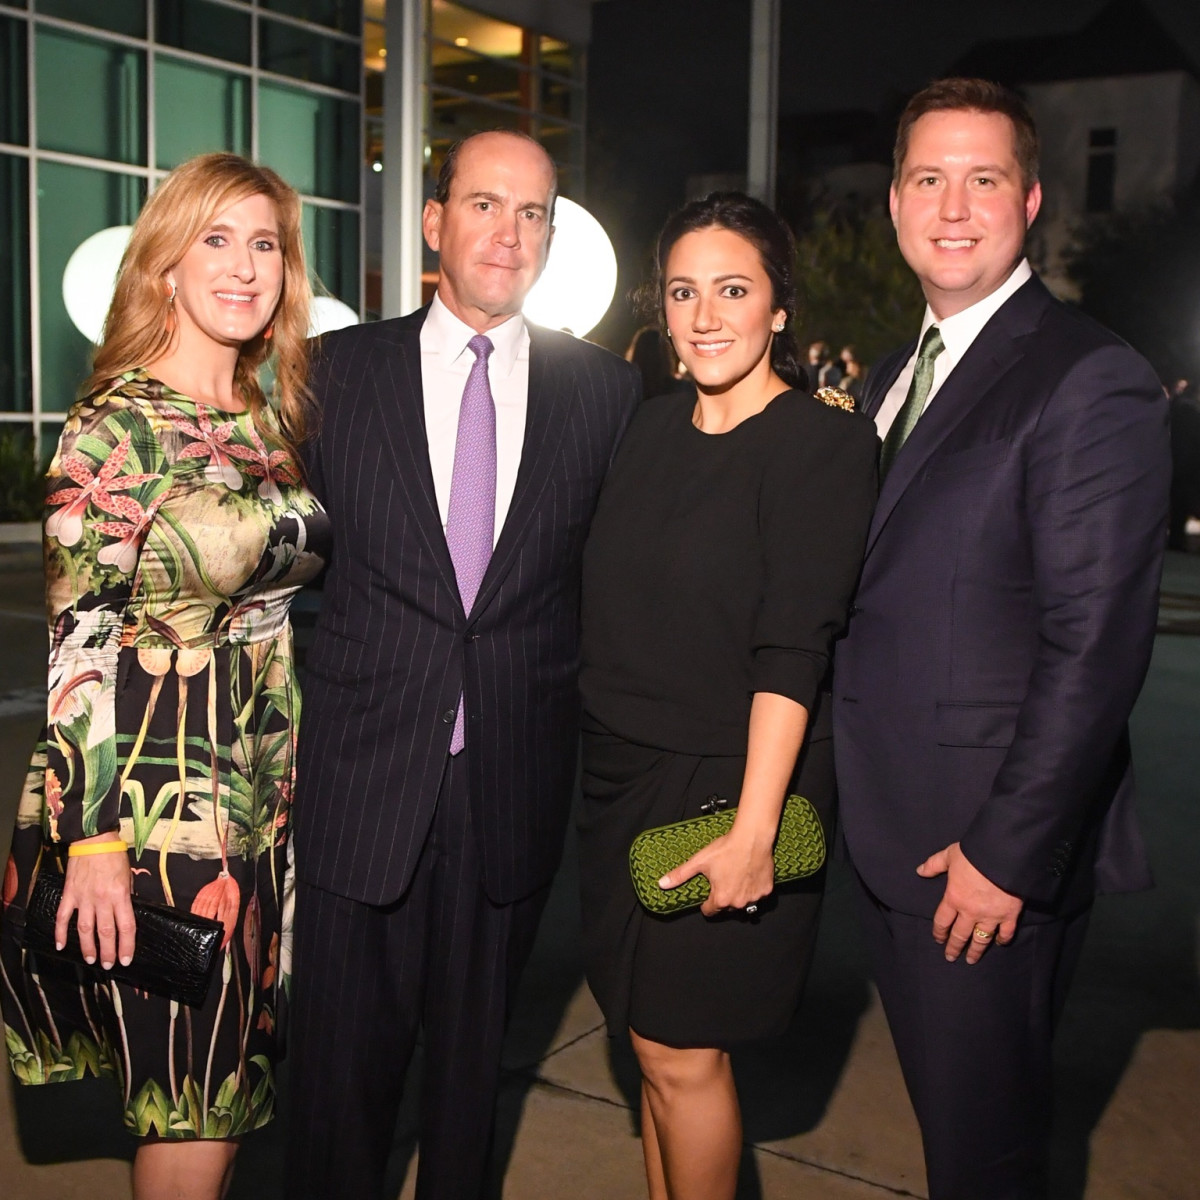 Dress for Success Cuisine for a Cause Lindsay Holstead, Rand Holstead, Kelli Kickerillo, Todd Forester